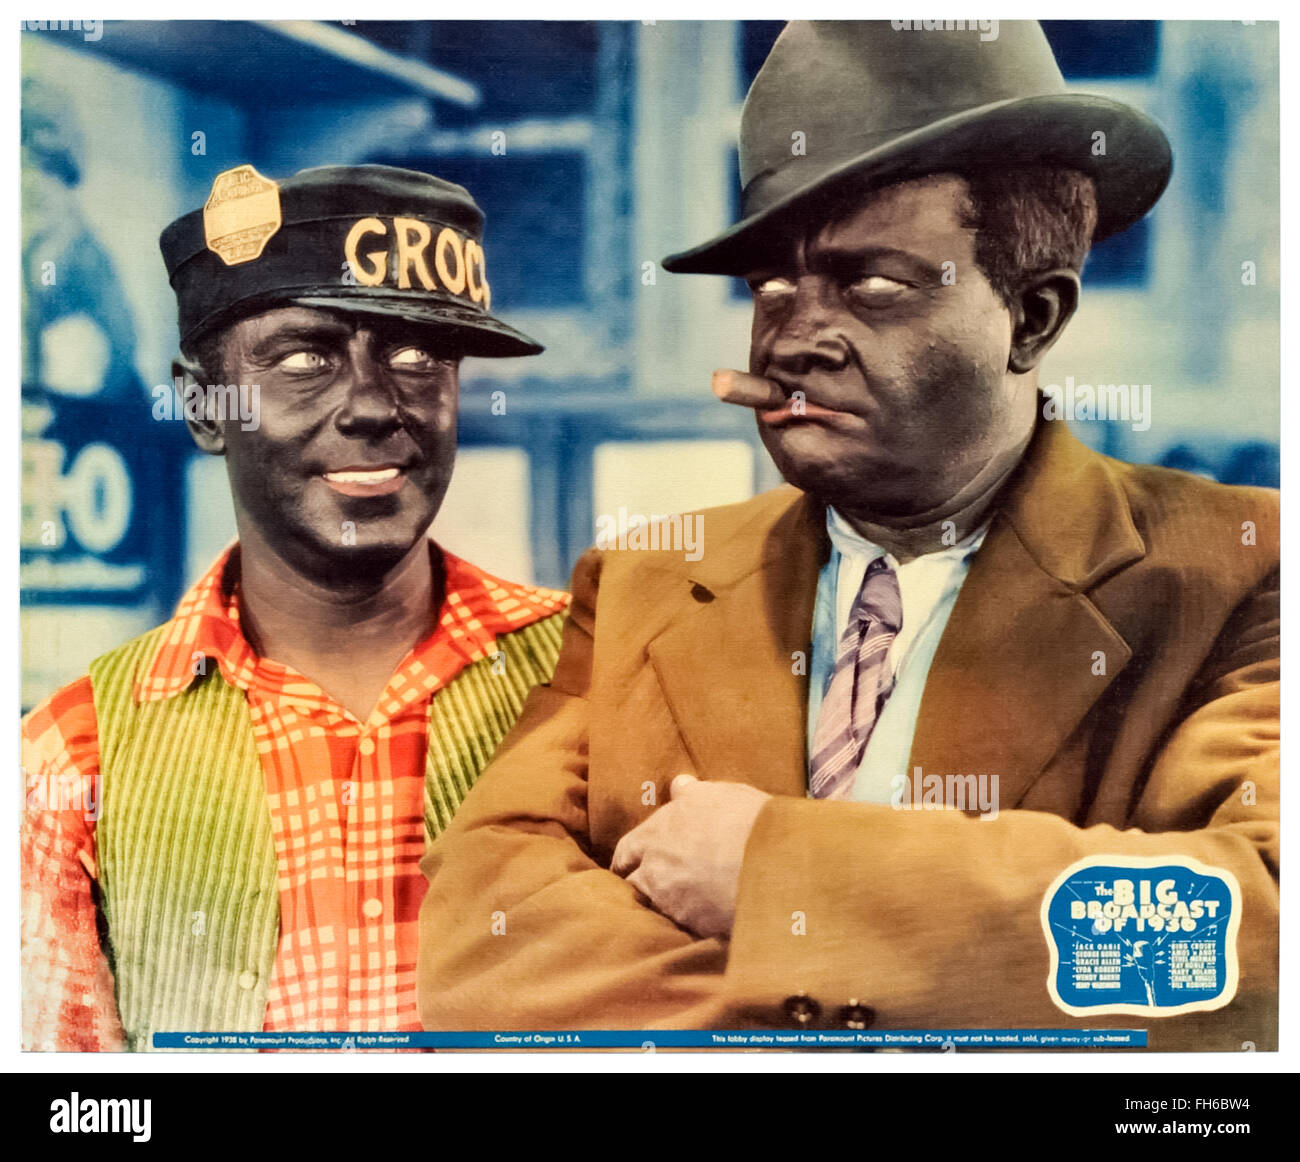 Amos 'n' Andy (Freeman Gosden and Charles Correll) in 'The Big Broadcast of 1936. - Stock Image